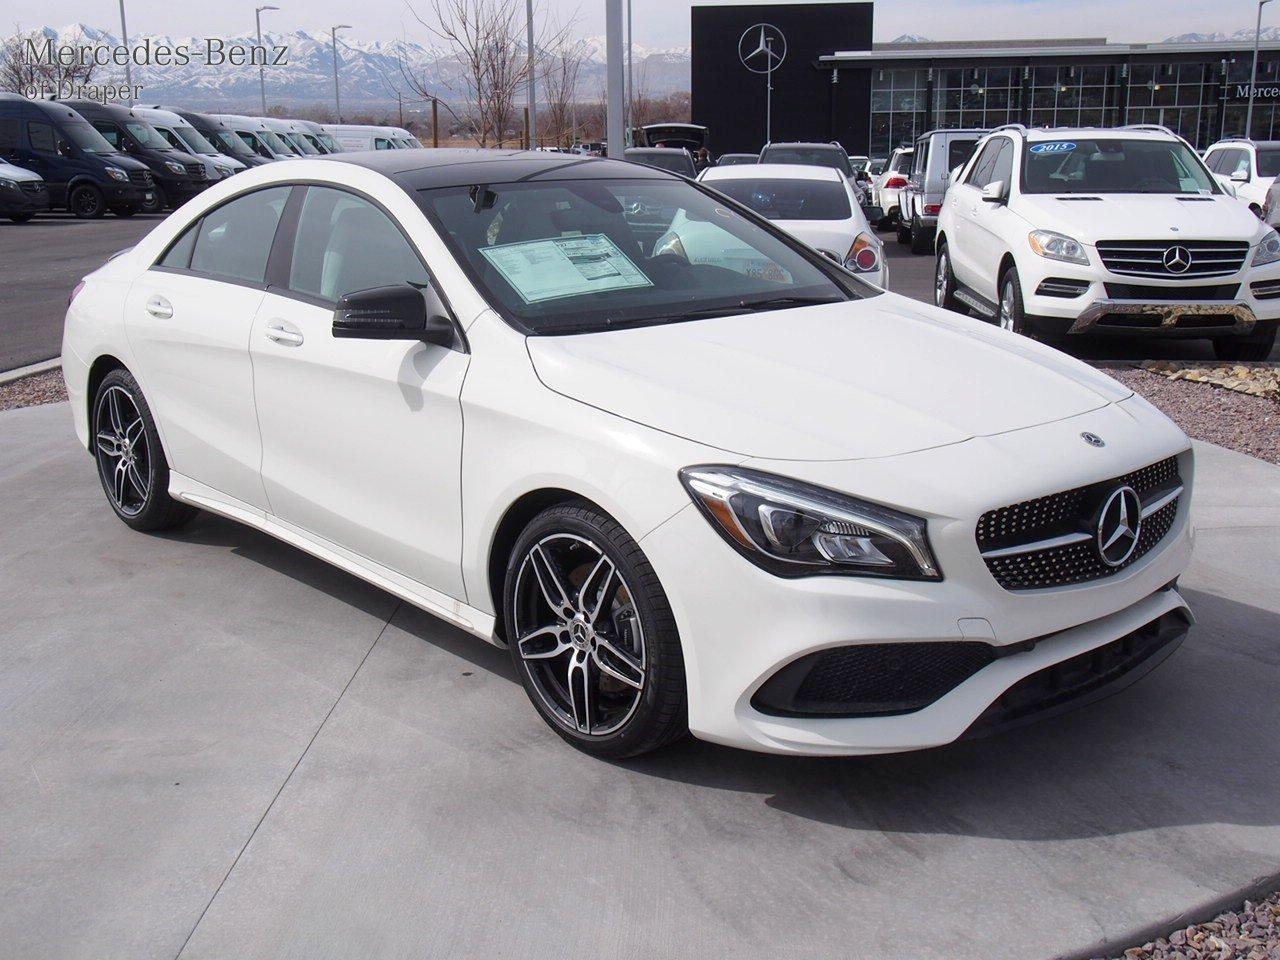 New 2018 mercedes benz cla cla 250 4matic coupe in draper for Mercedes benz financial payment address